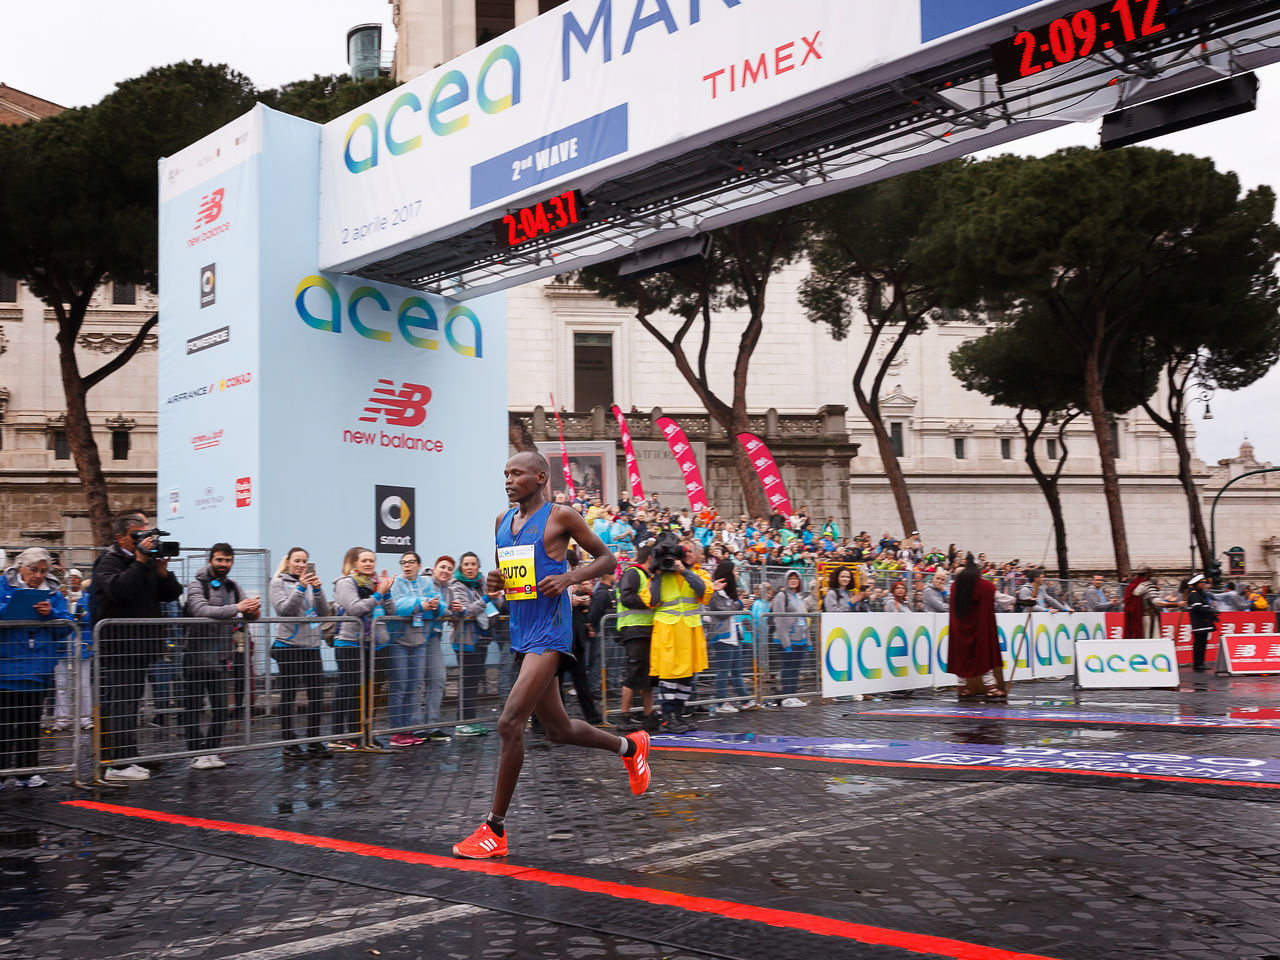 Rome, Italy - April 2, 2017: Ruto Dominic Kipngetich won the second place in the men's race, the 23rd Rome Marathon. Ruto on his arrival at the finish line. Adult Athlete City Day Finish Line  Kipngetich Marathon Marathonrunner Outdoors People Rome Marathon Rome Marathon 2017 Runner Ruto Ruto Kipngetich Sport Sport In The City Sportsman Winner